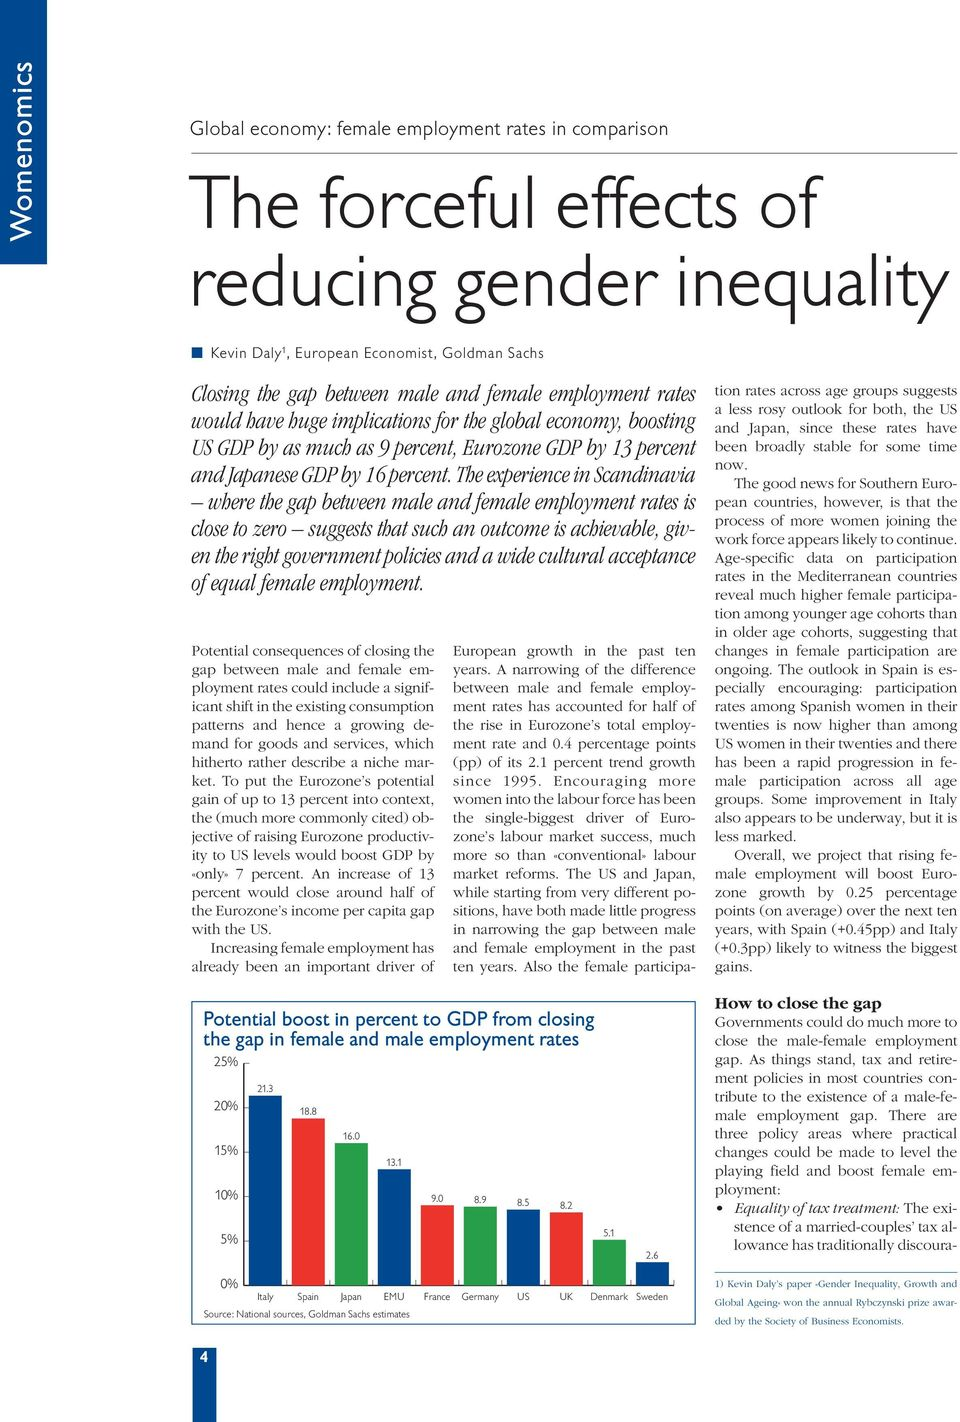 The experience in Scandinavia where the gap between male and female employment rates is close to zero suggests that such an outcome is achievable, given the right government policies and a wide